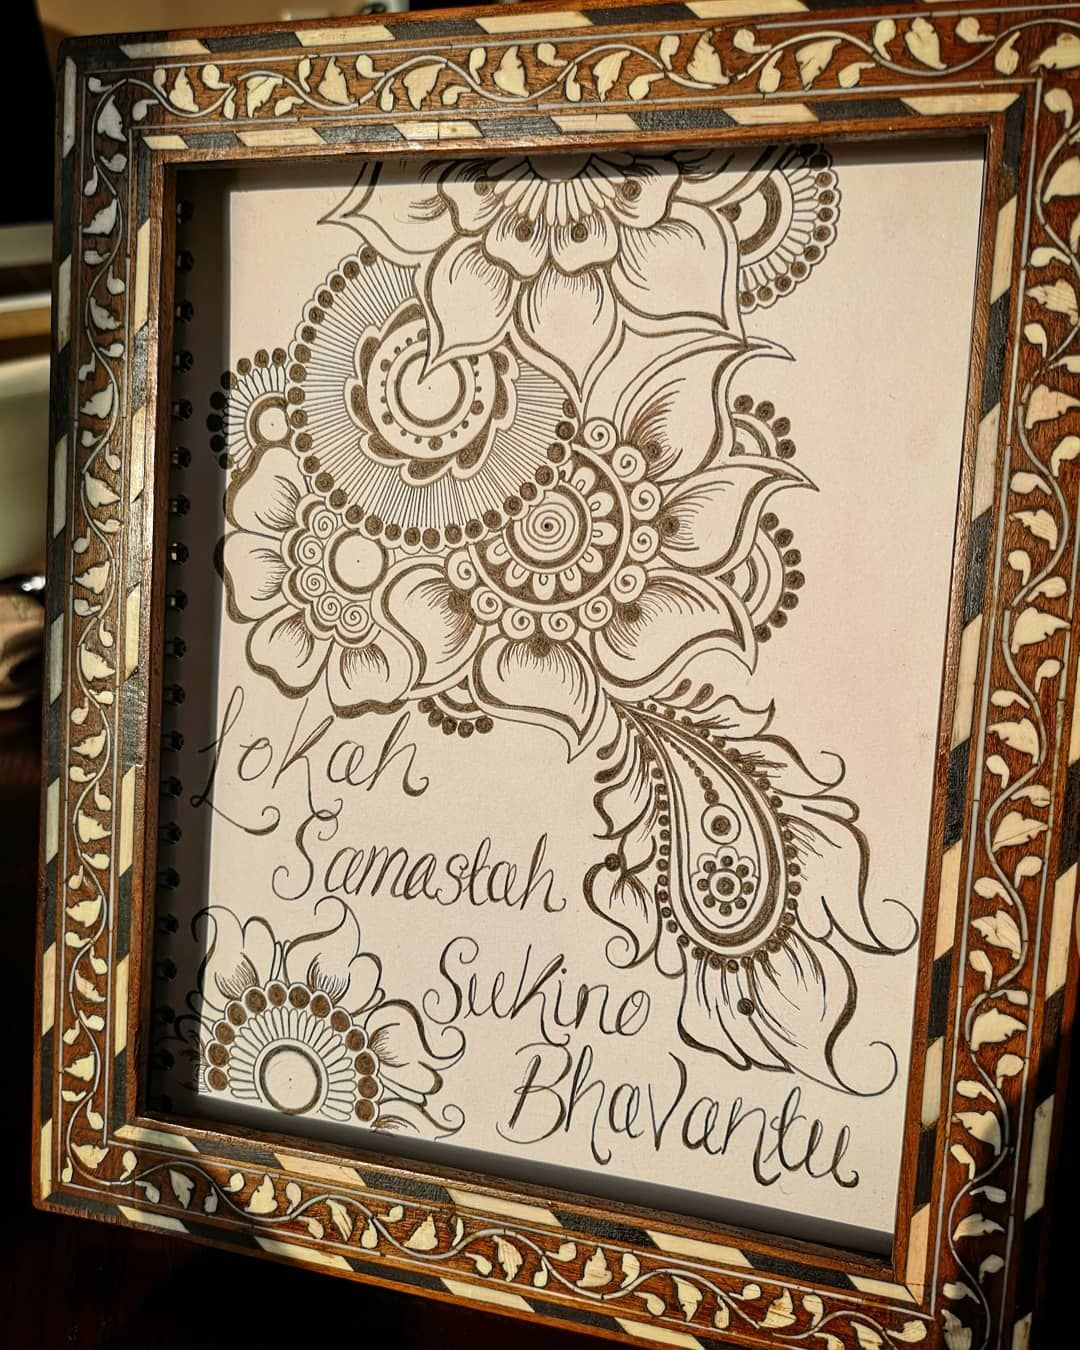 New work of art going up @yogastudioely  Lokah Samastah Sukino Bhavantu   May all beings everywhere be happy and free  Omm  #artwork #design #letsframeit #henna #inspired #creative #yogi #artist #yogastudioely #learning #growing #tryingmybest #enjoy #light #sunshine #grateful #forsomuch